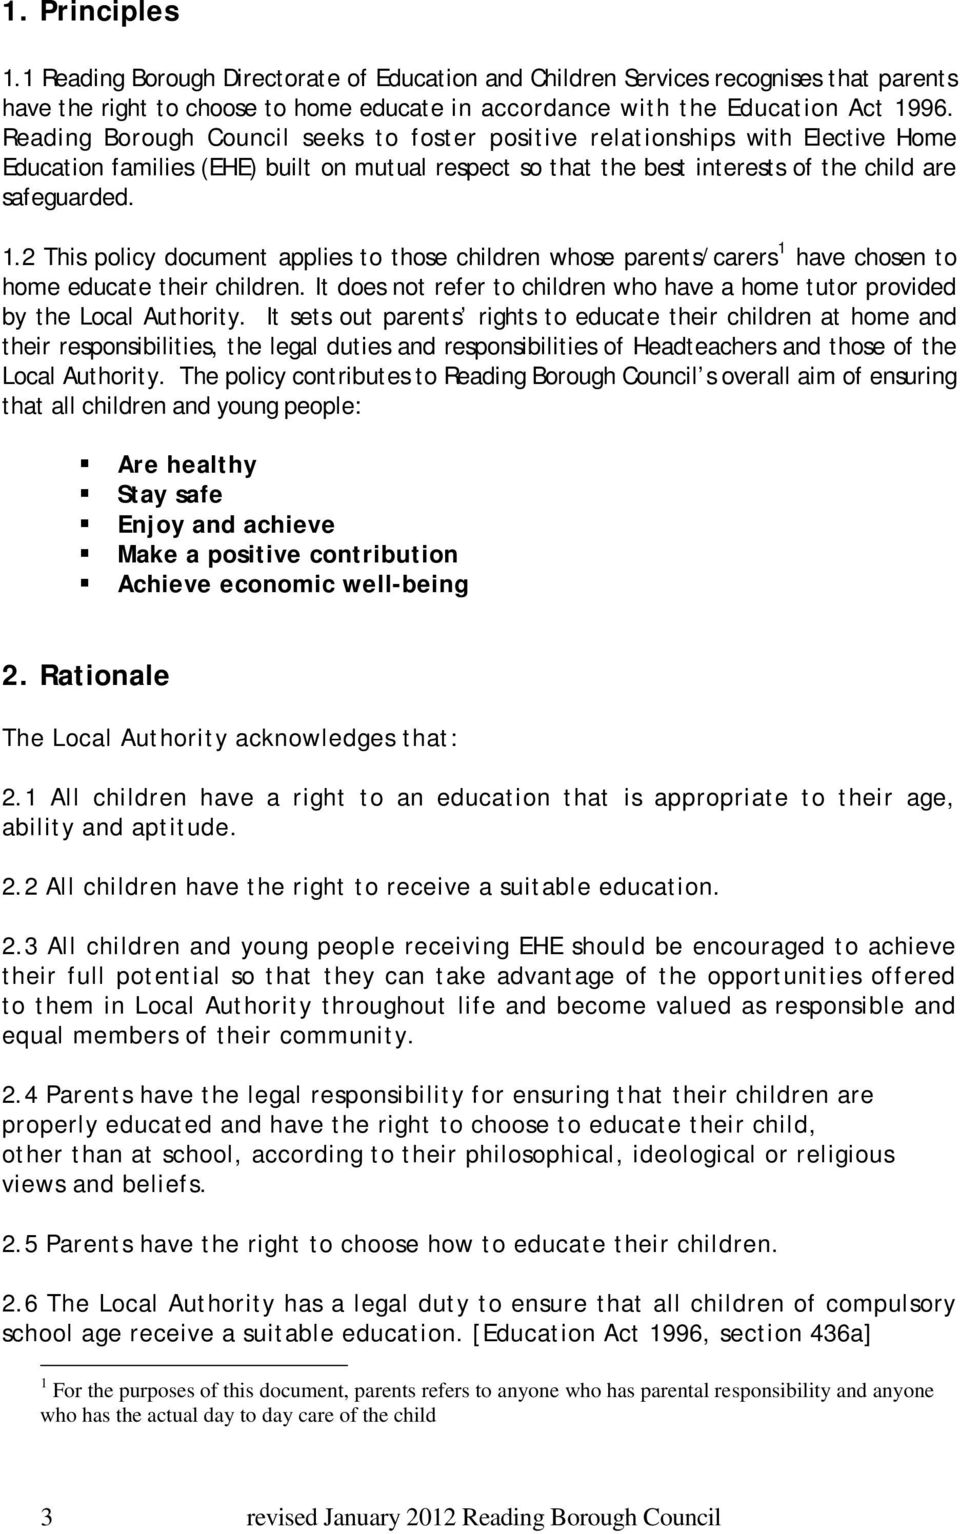 2 This policy document applies to those children whose parents/carers 1 have chosen to home educate their children. It does not refer to children who have a home tutor provided by the Local Authority.